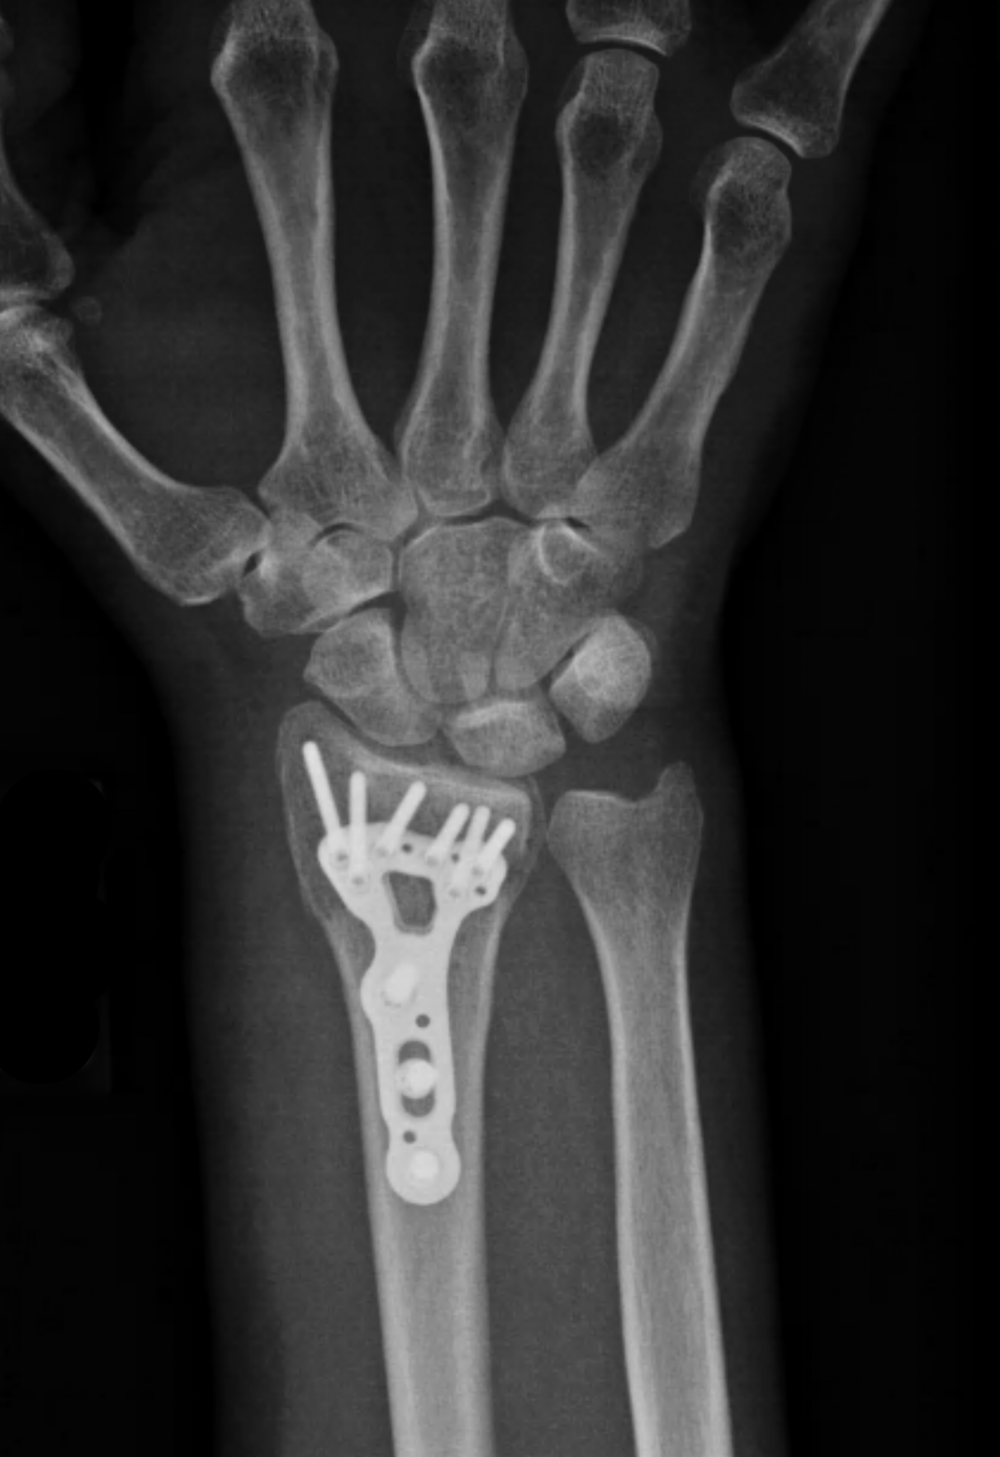 X-ray of a distal radius fracture after surgical treatment.